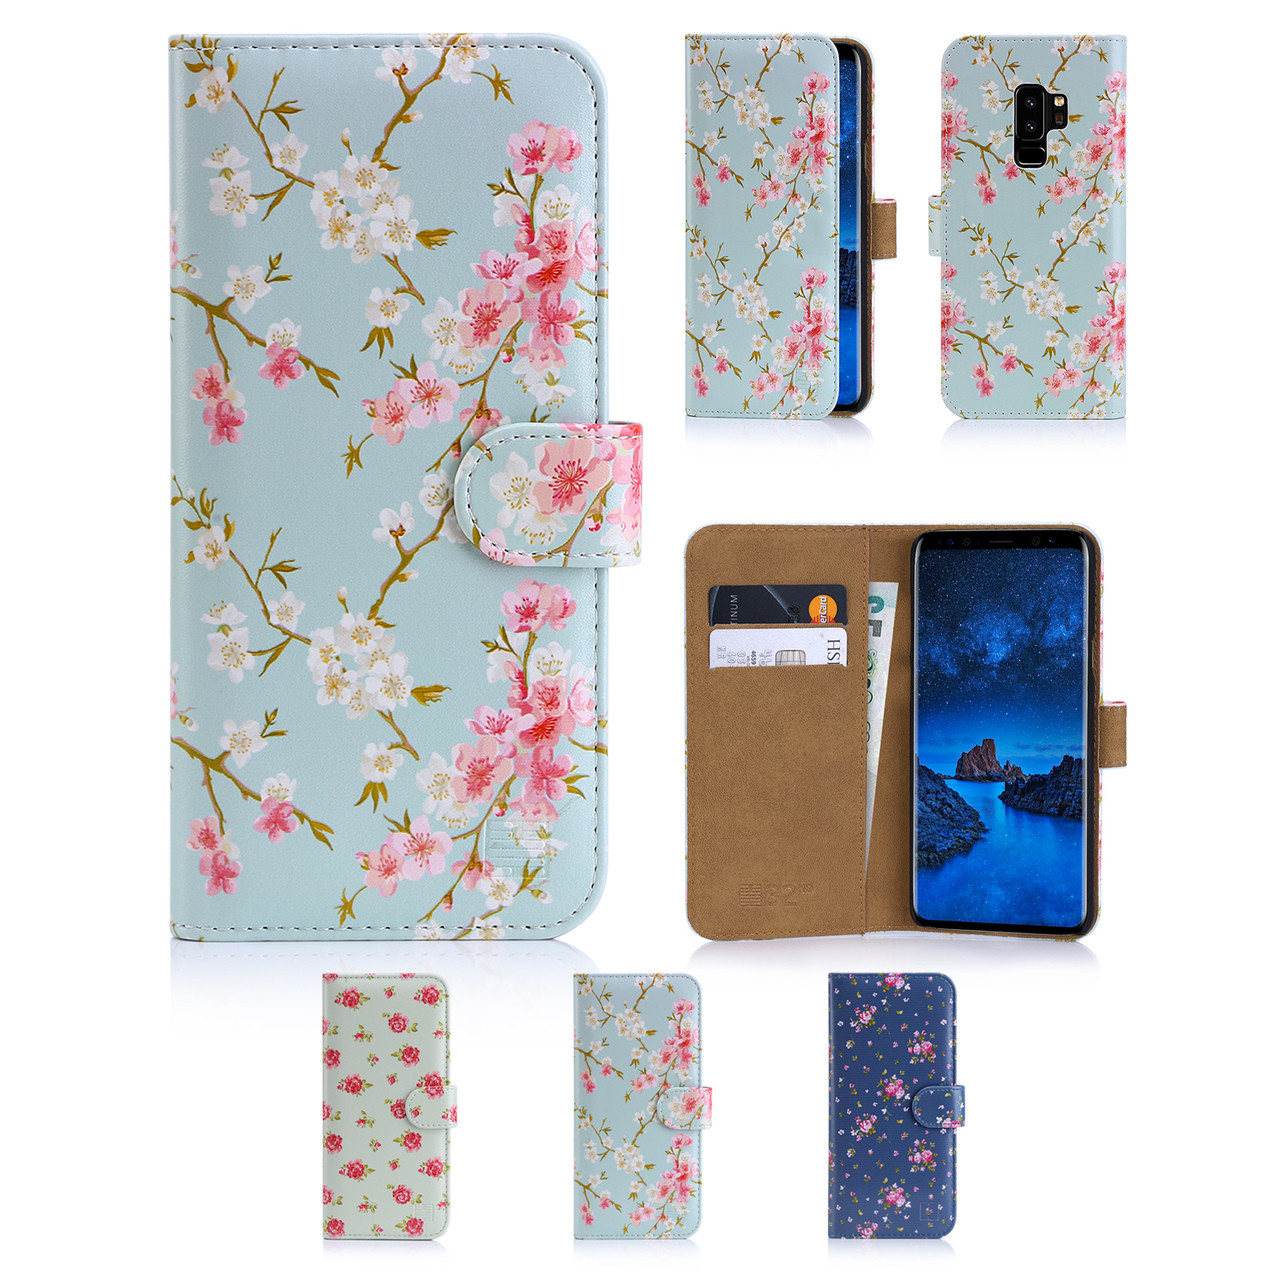 sneakers for cheap 00fba 5ecb1 Samsung Galaxy S9 Plus PU Leather Floral Design Book Wallet Case